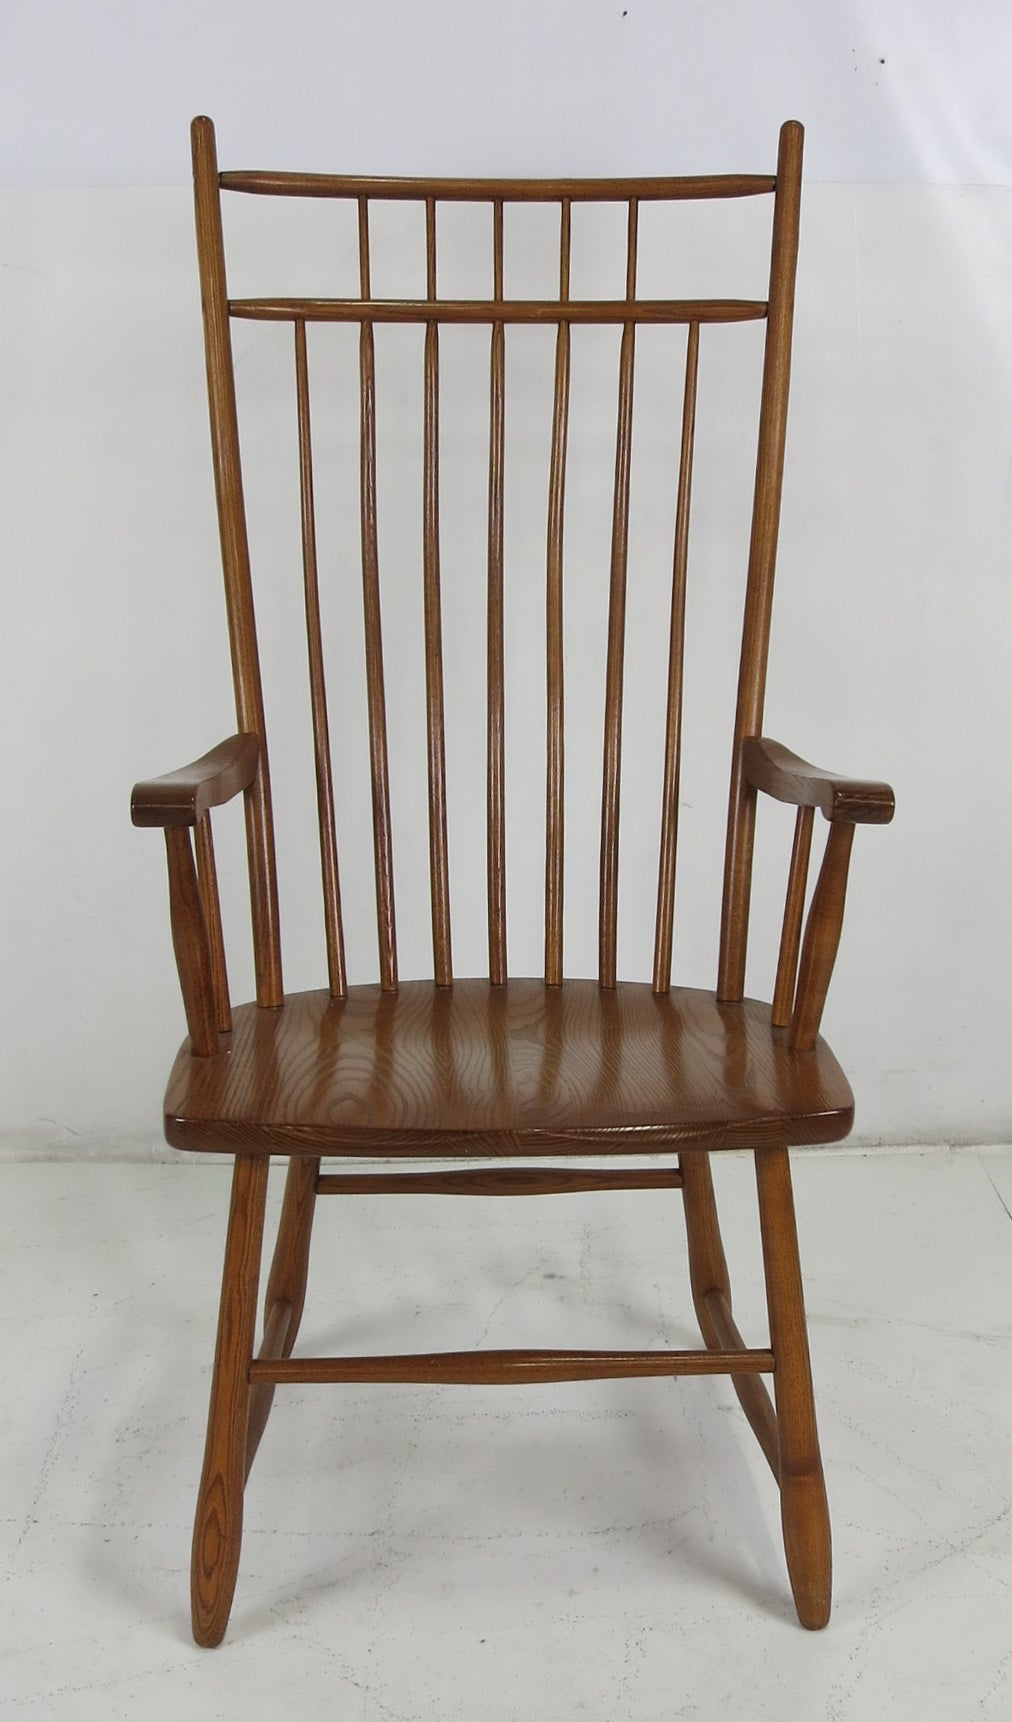 Antique Cane Seat Chairs in addition Oak Table additionally Tin Tile Backsplash furthermore Antique Pressed Back Chairs in addition Dcchairs. on oak pressed back dining chairs